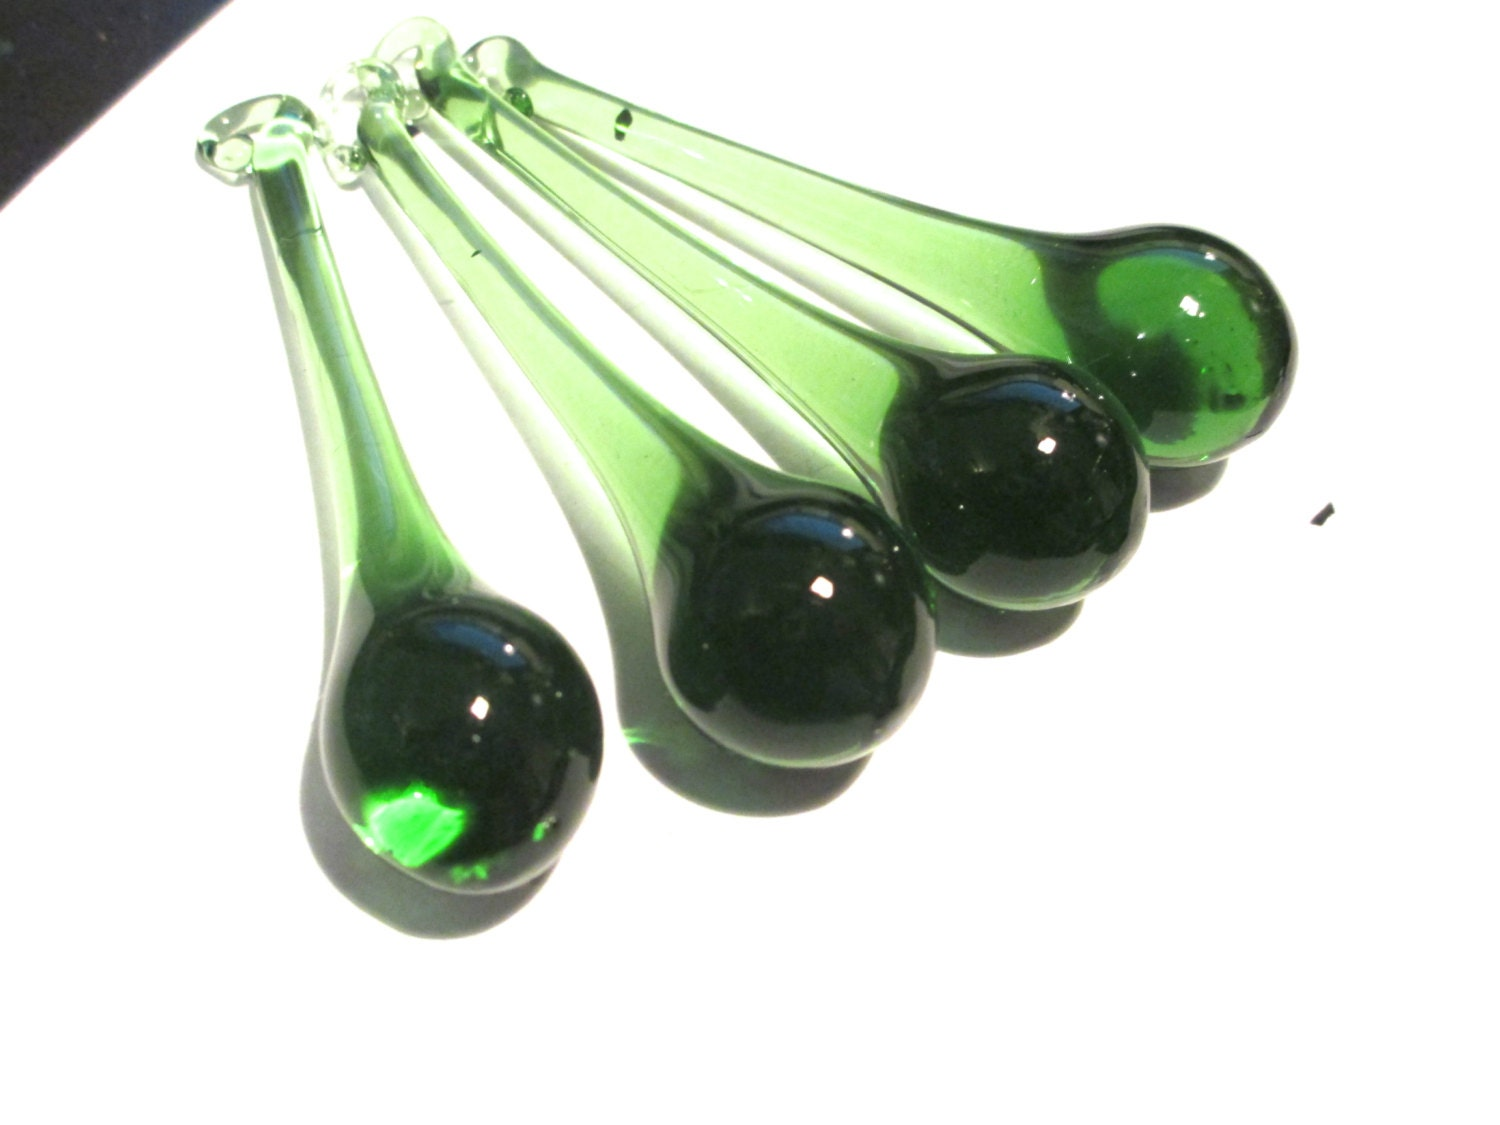 4 Green Glass Chandelier Crystals 80mm Raindrop Crystal Prisms